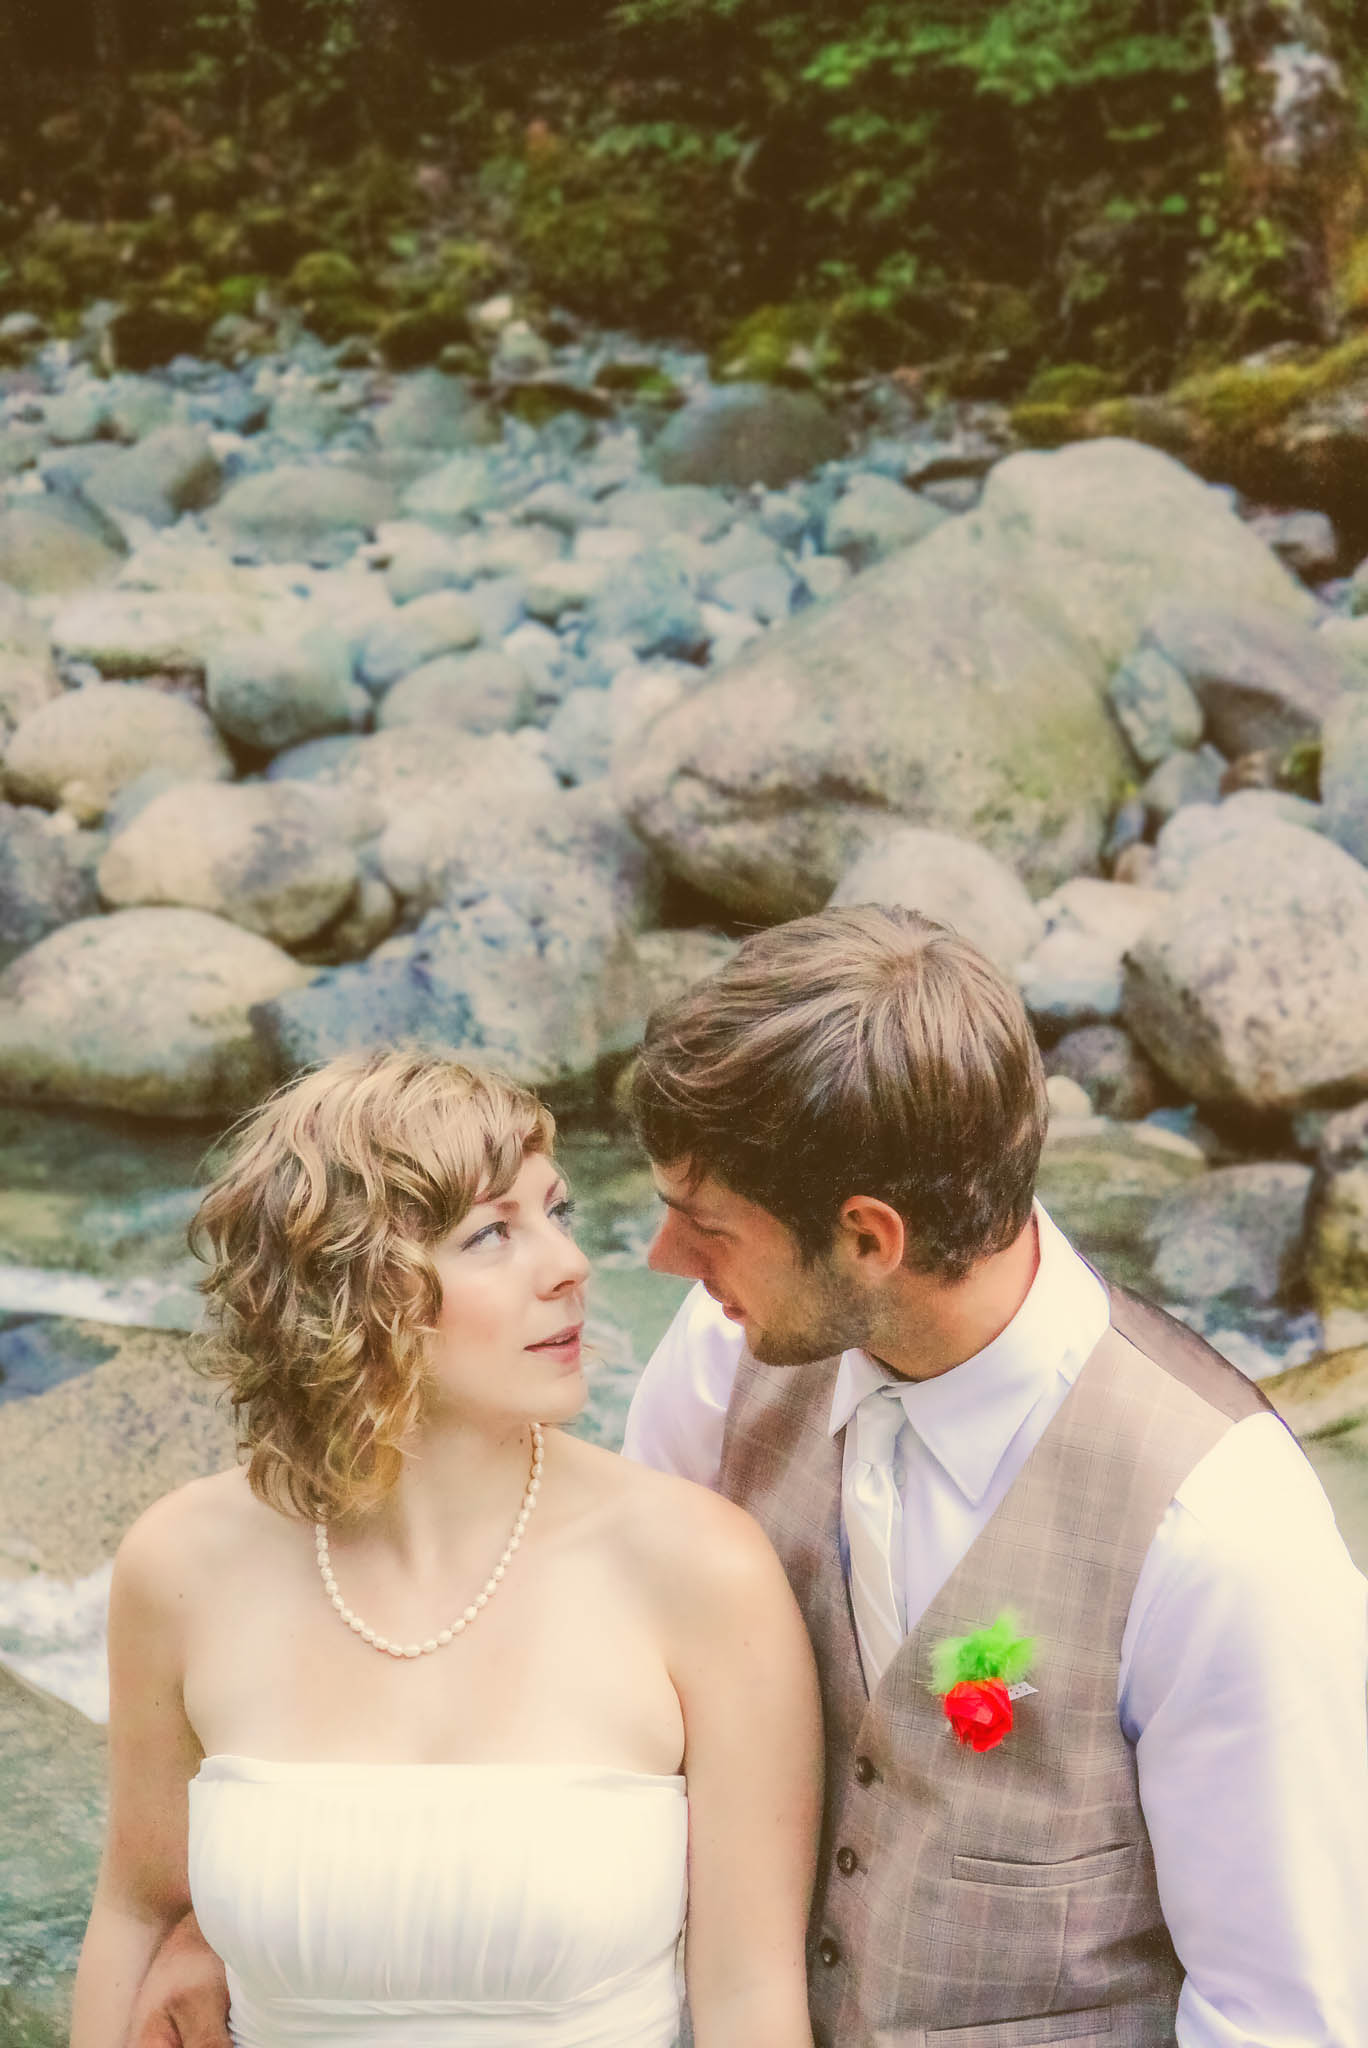 quirky lynn valley engagement shoot jennifer picard photography sunshine coast bc wedding photographer